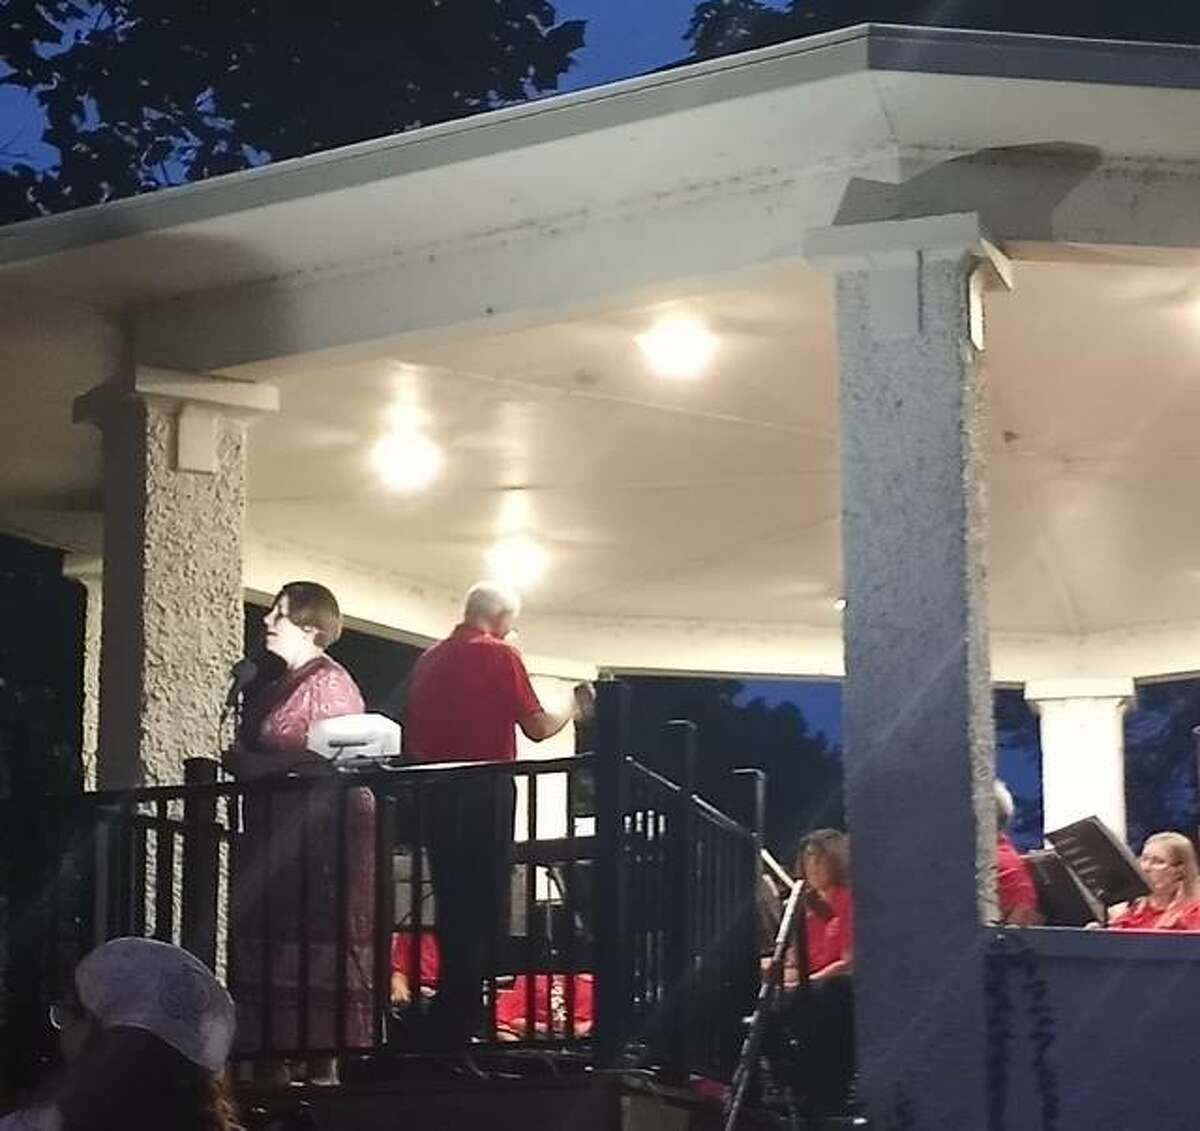 The Alton Municipal Band held its second-to-last concert of the 2021 summer season on Thursday in Riverview Park featuring guest vocalist Robyn Brandon.